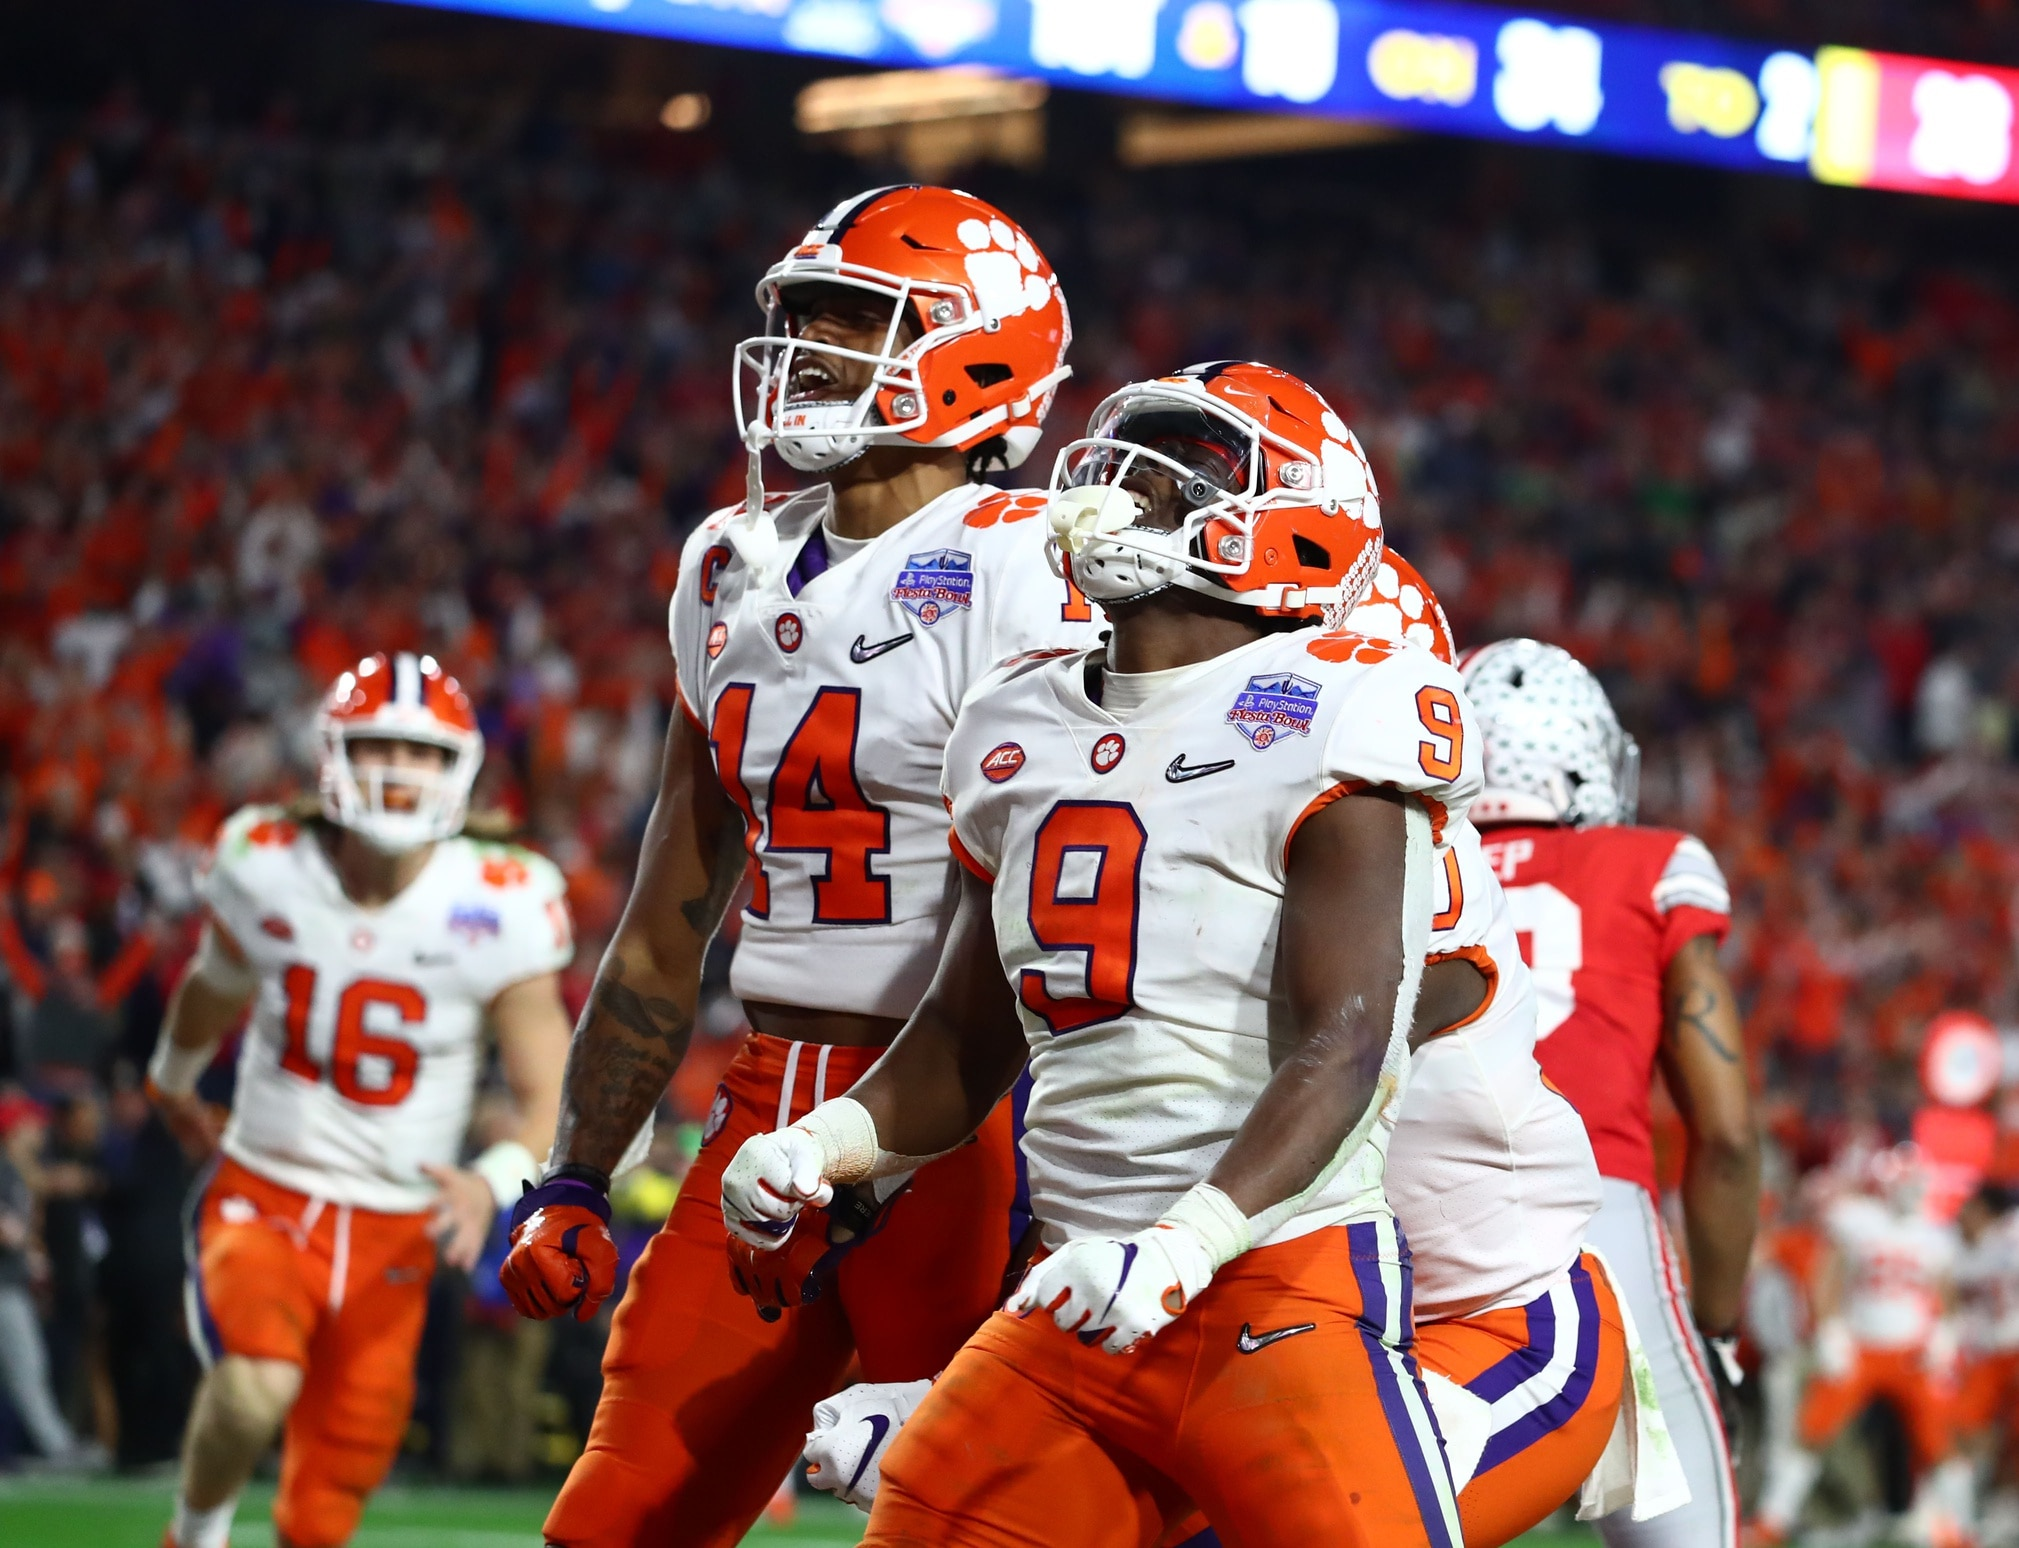 Clemson football schedule 2019: Dates, times, opponents, results | NCAA.com